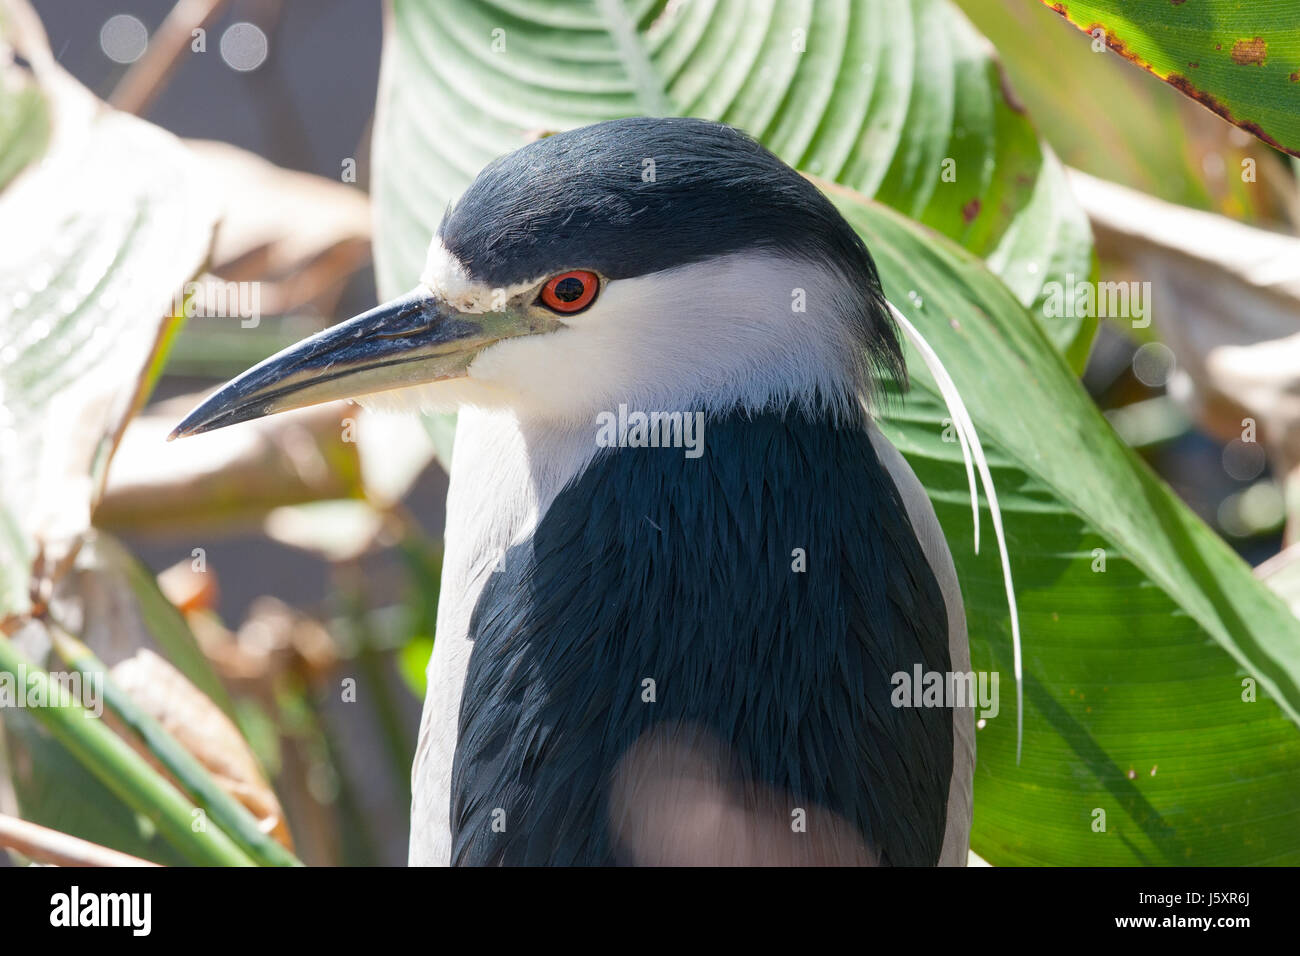 Close up of a Black Crowned Night Heron bird in wetlands Stock Photo